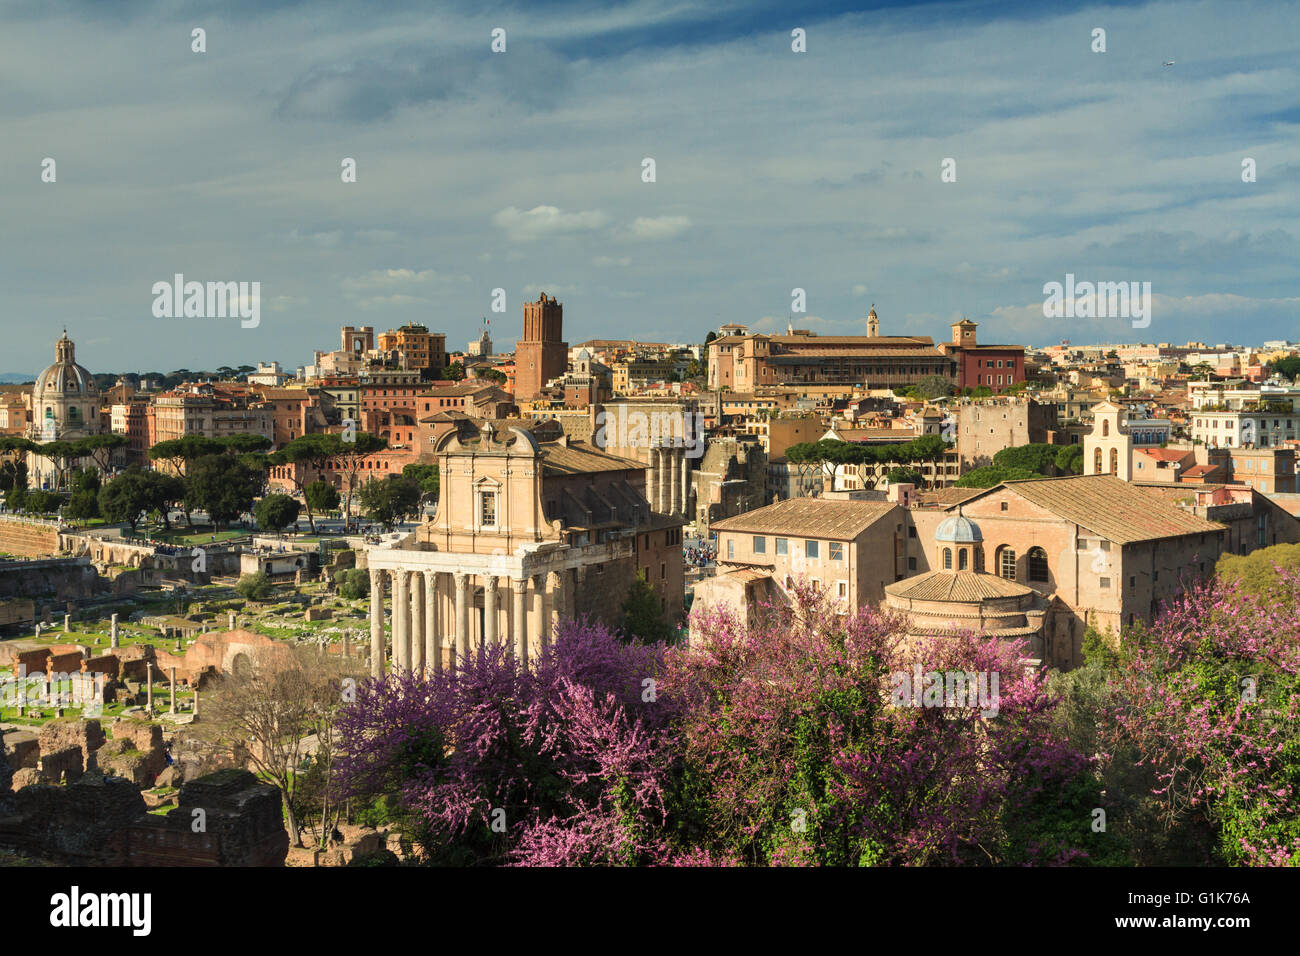 Viewpoint of the Forum Romanum, Rome, Italy - Stock Image